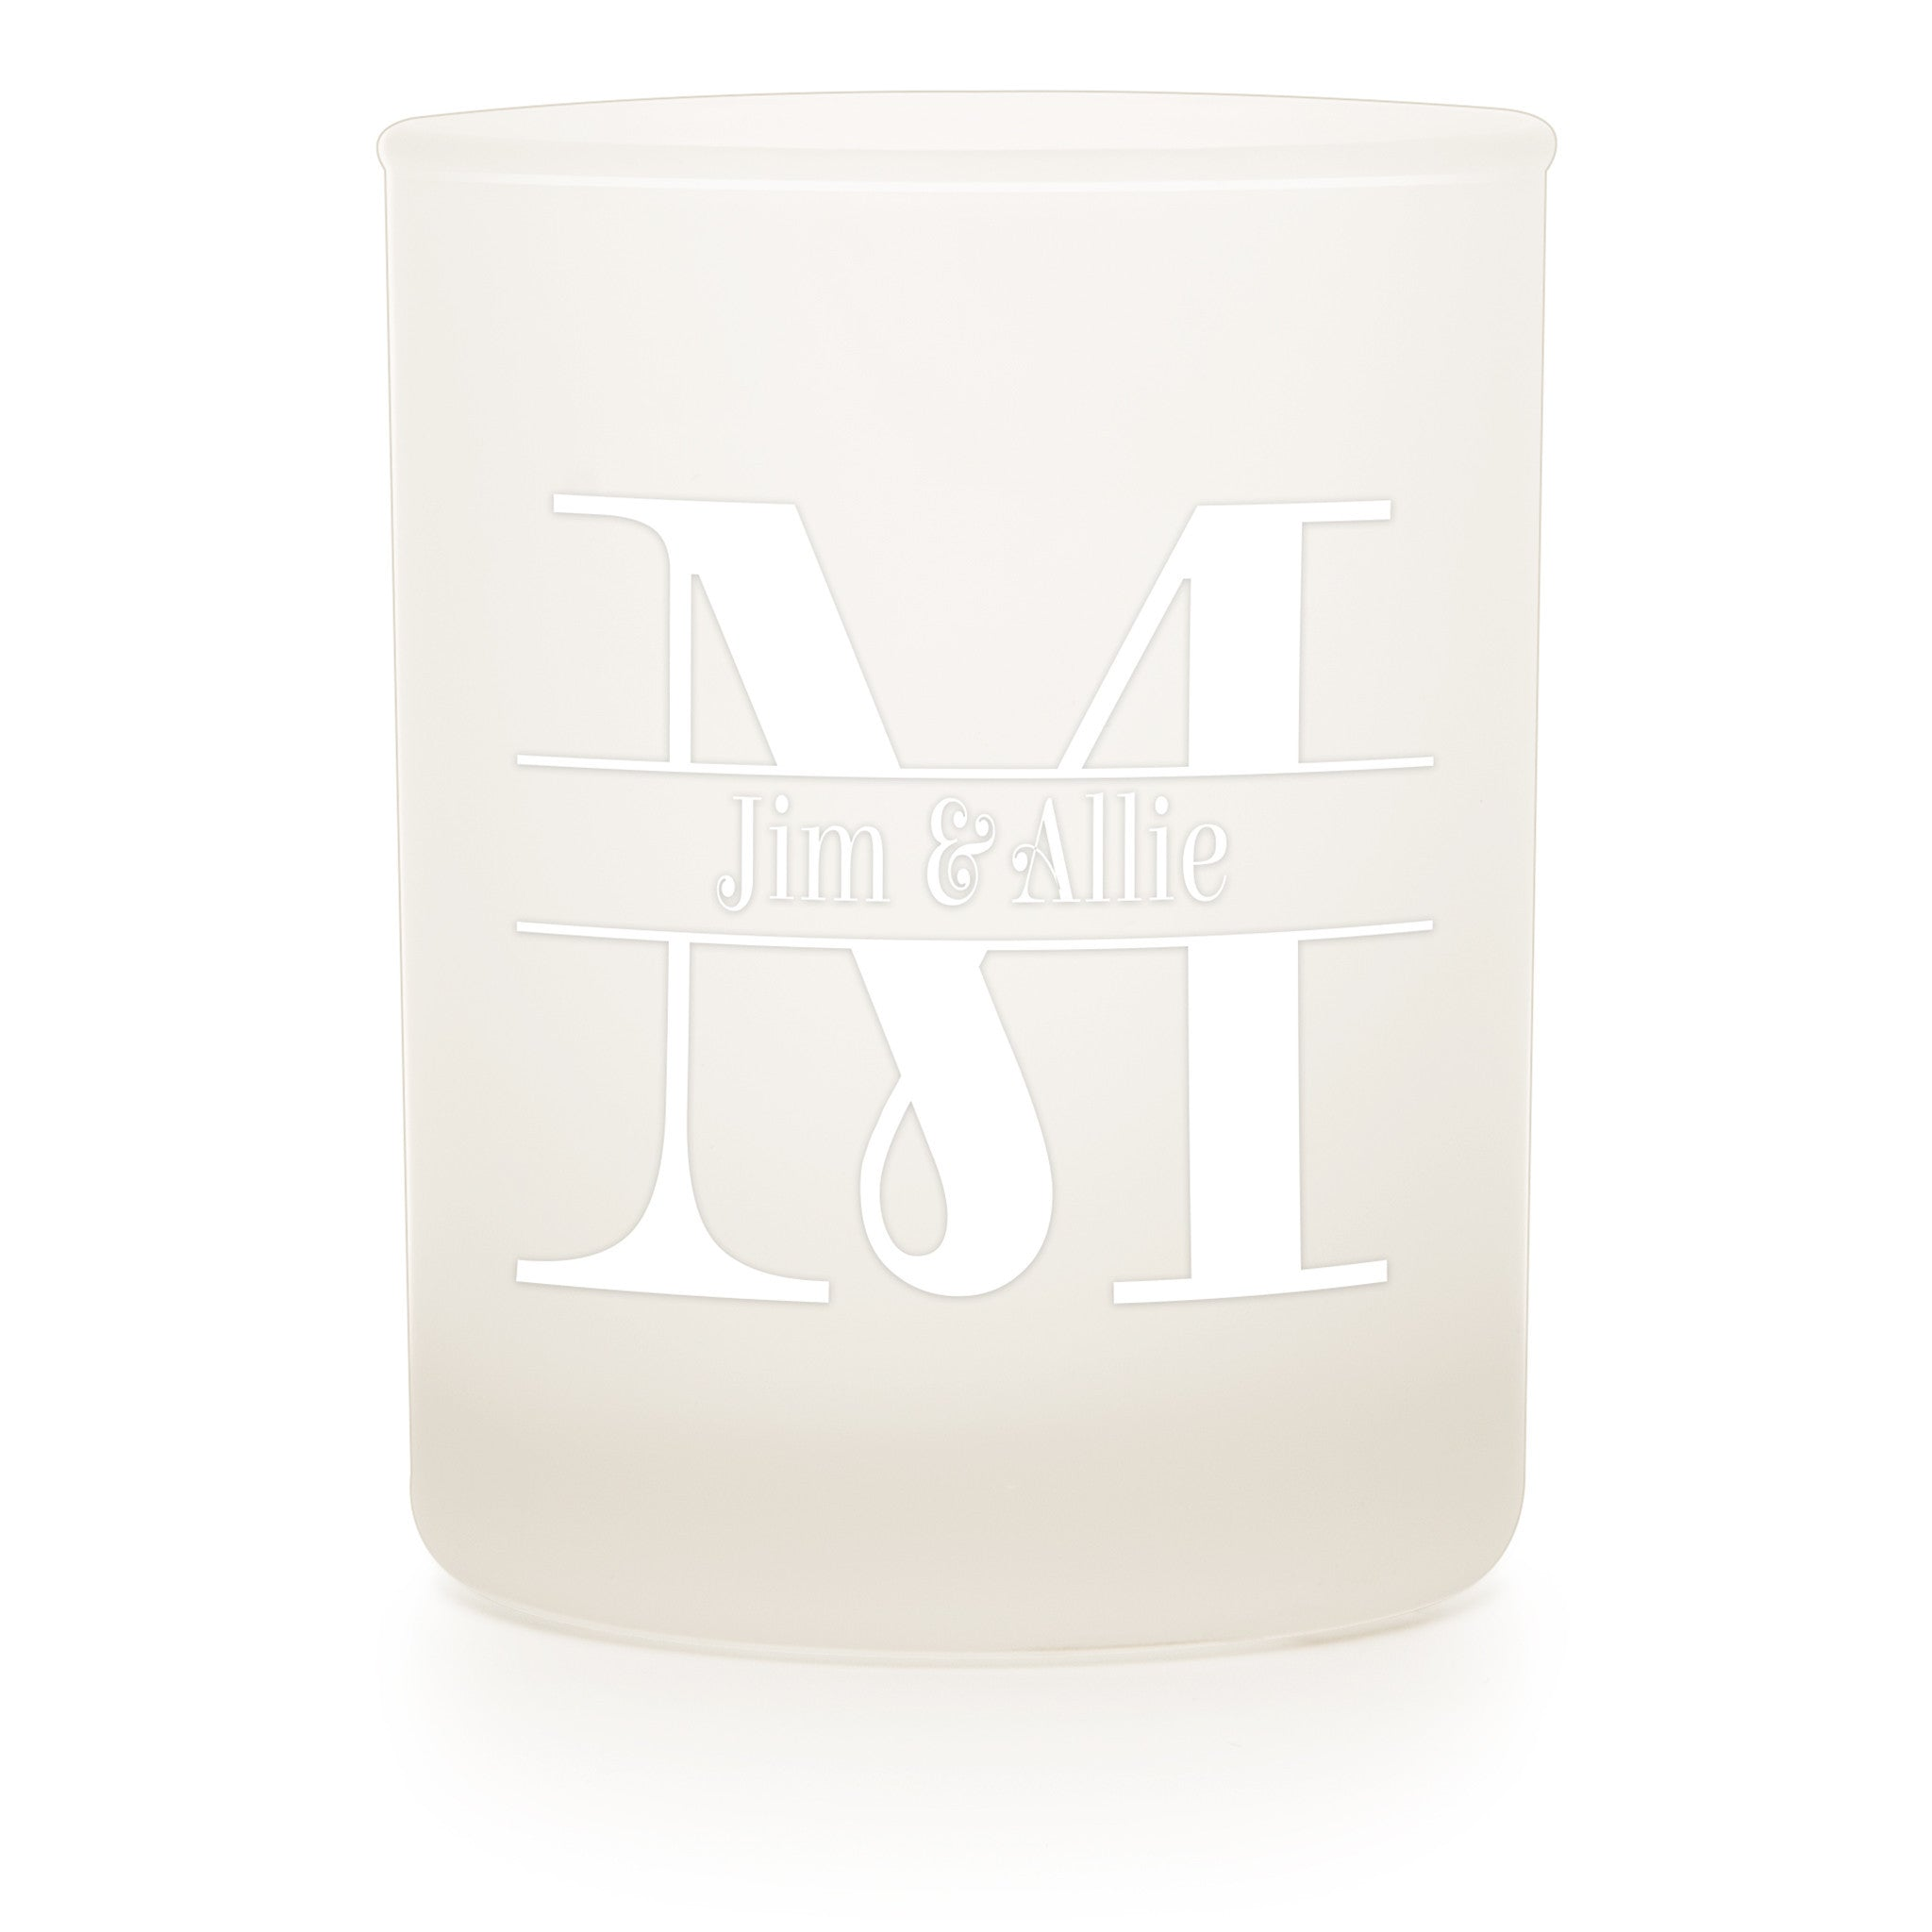 Candlemart.com Frosted Tumbler Candle Holders $ 1.50